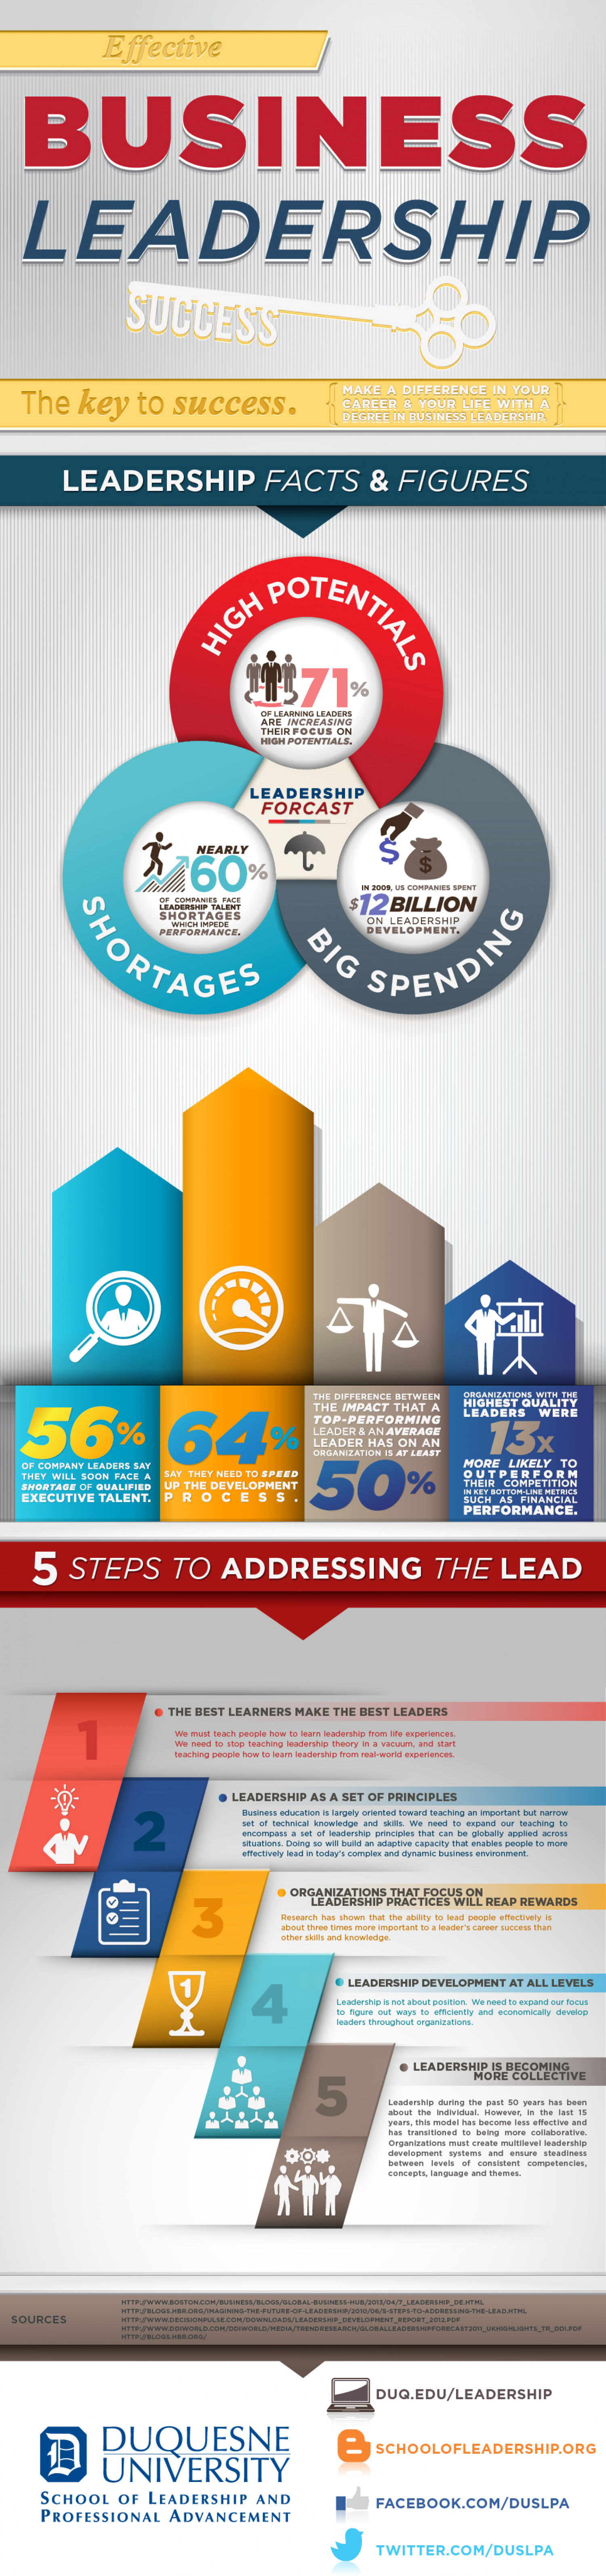 Effective Business Leadership Success Infographic